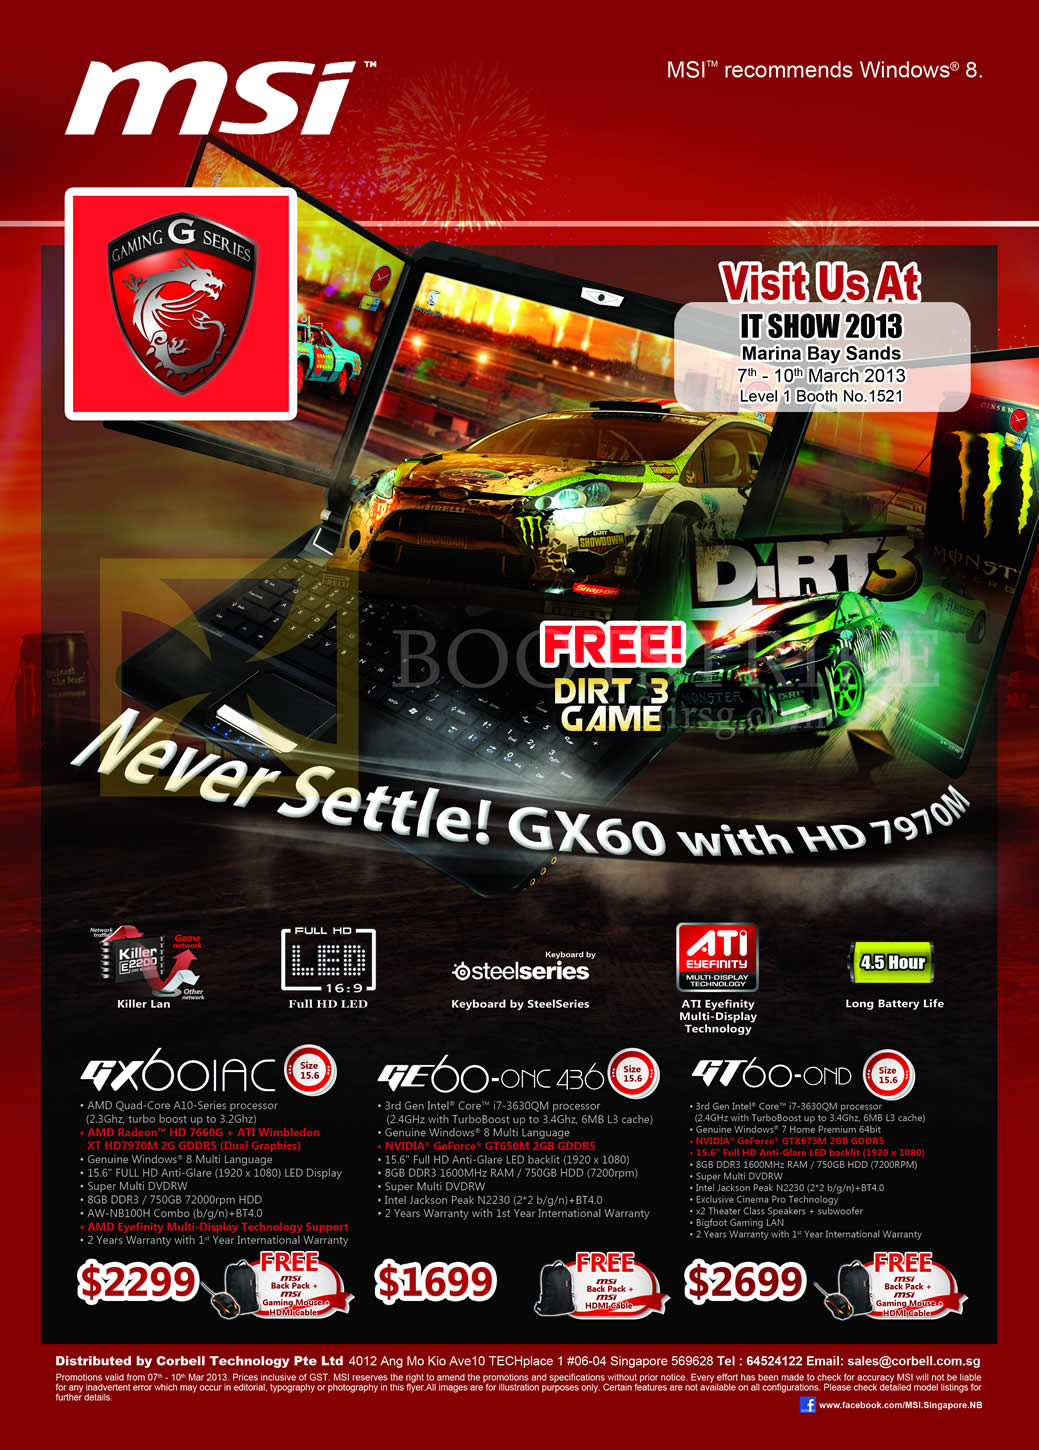 IT SHOW 2013 price list image brochure of Newstead MSI Notebooks G Series Notebooks GX60-1AC, GE60 0NC, GT60-0ND